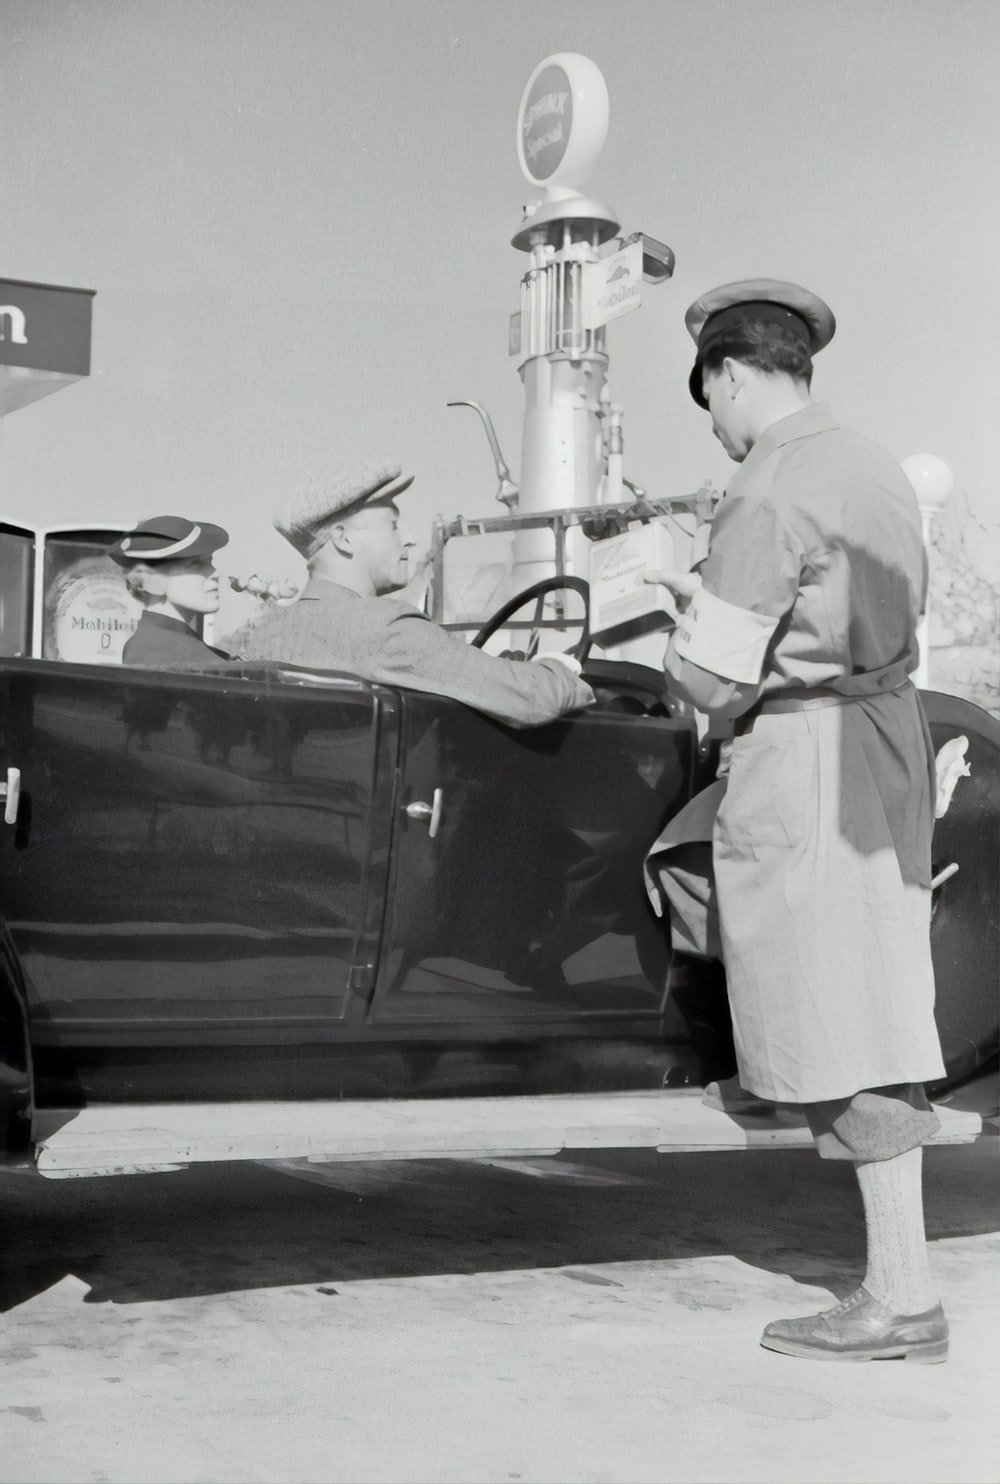 man in white uniform standing beside black car